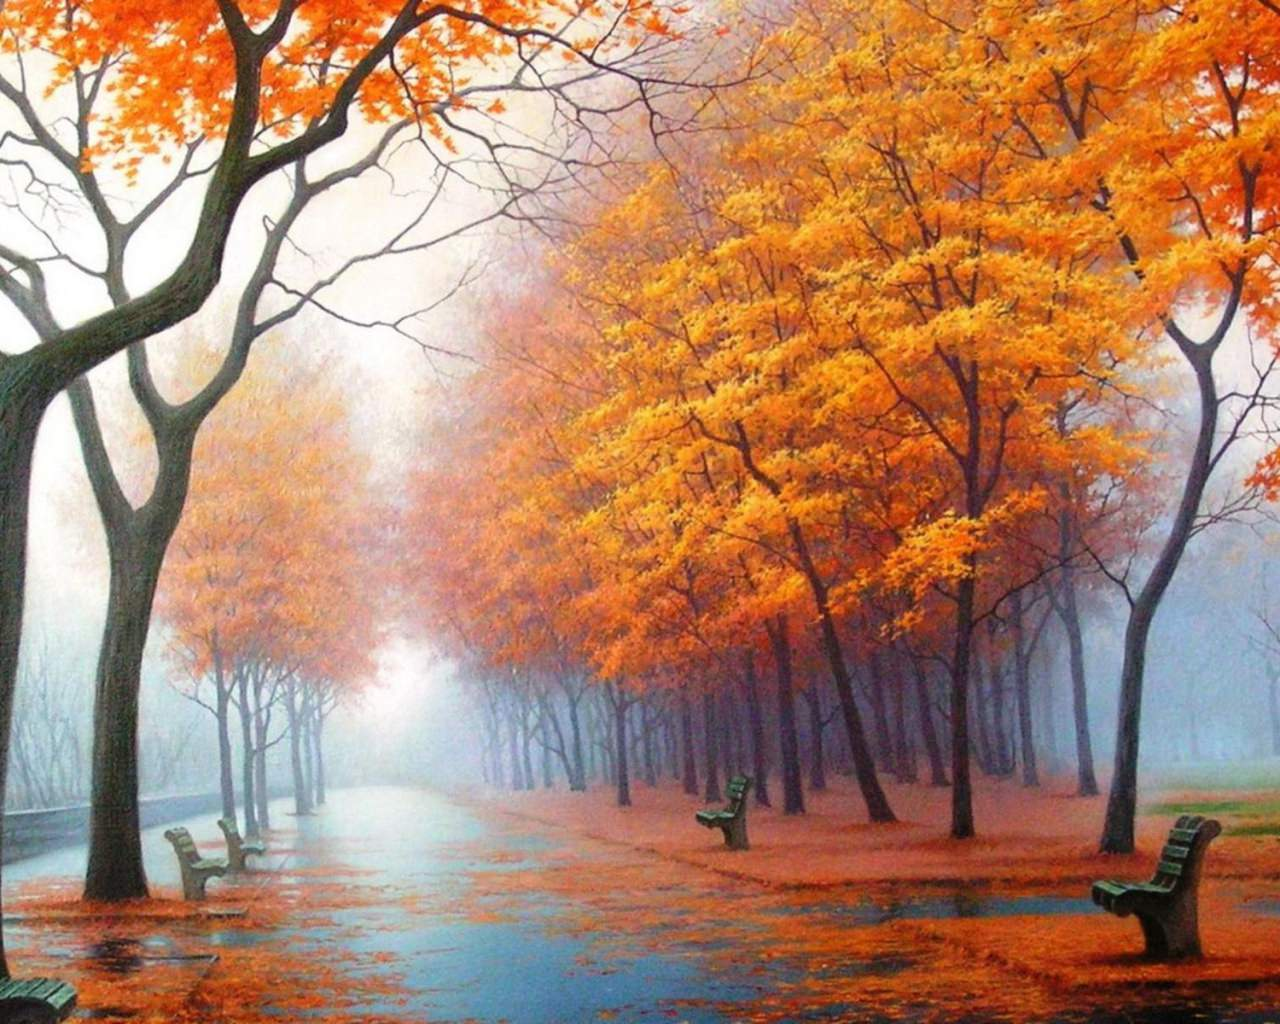 Free Widescreen Fall Wallpaper 21 Autumn Wallpapers Backgrounds Images Freecreatives